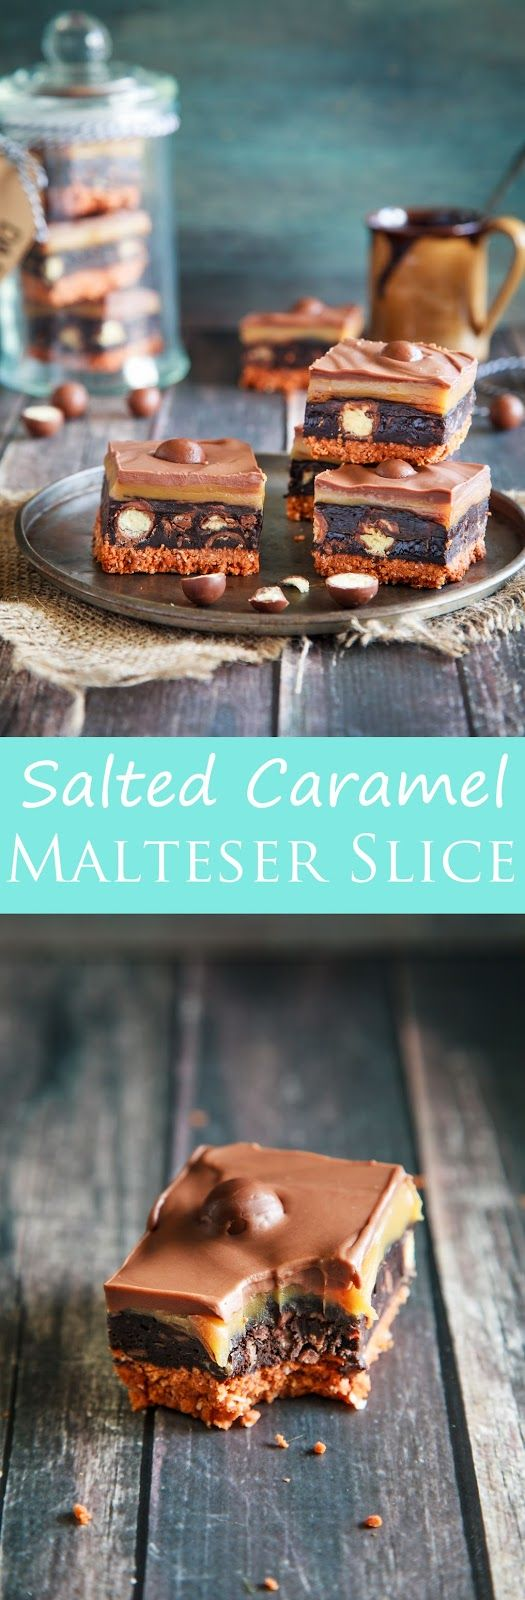 Salted Caramel No Bake Malteser Slice | The Whimsical Wife